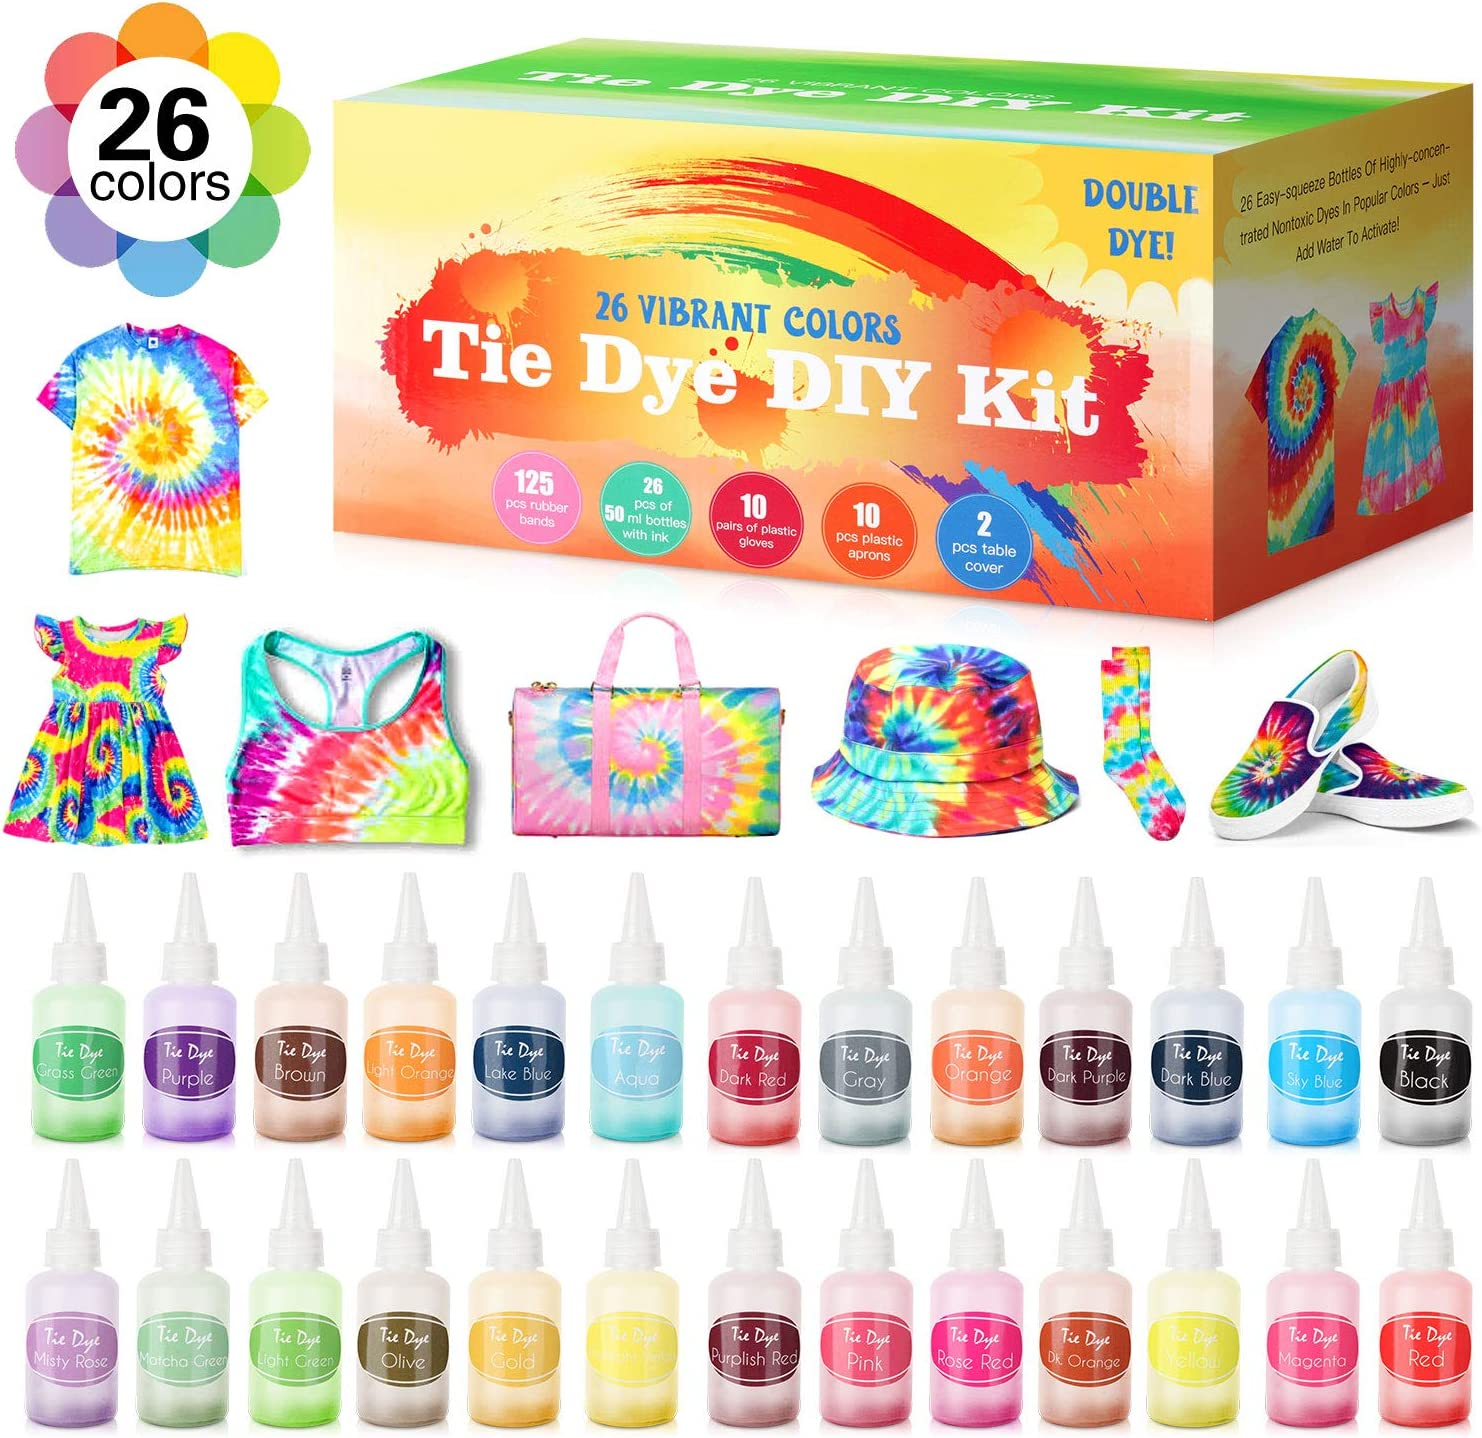 Tie Dye DIY Kit 26 Colors Fabric Adults Super popular specialty store Kits Kids 67% OFF of fixed price for and